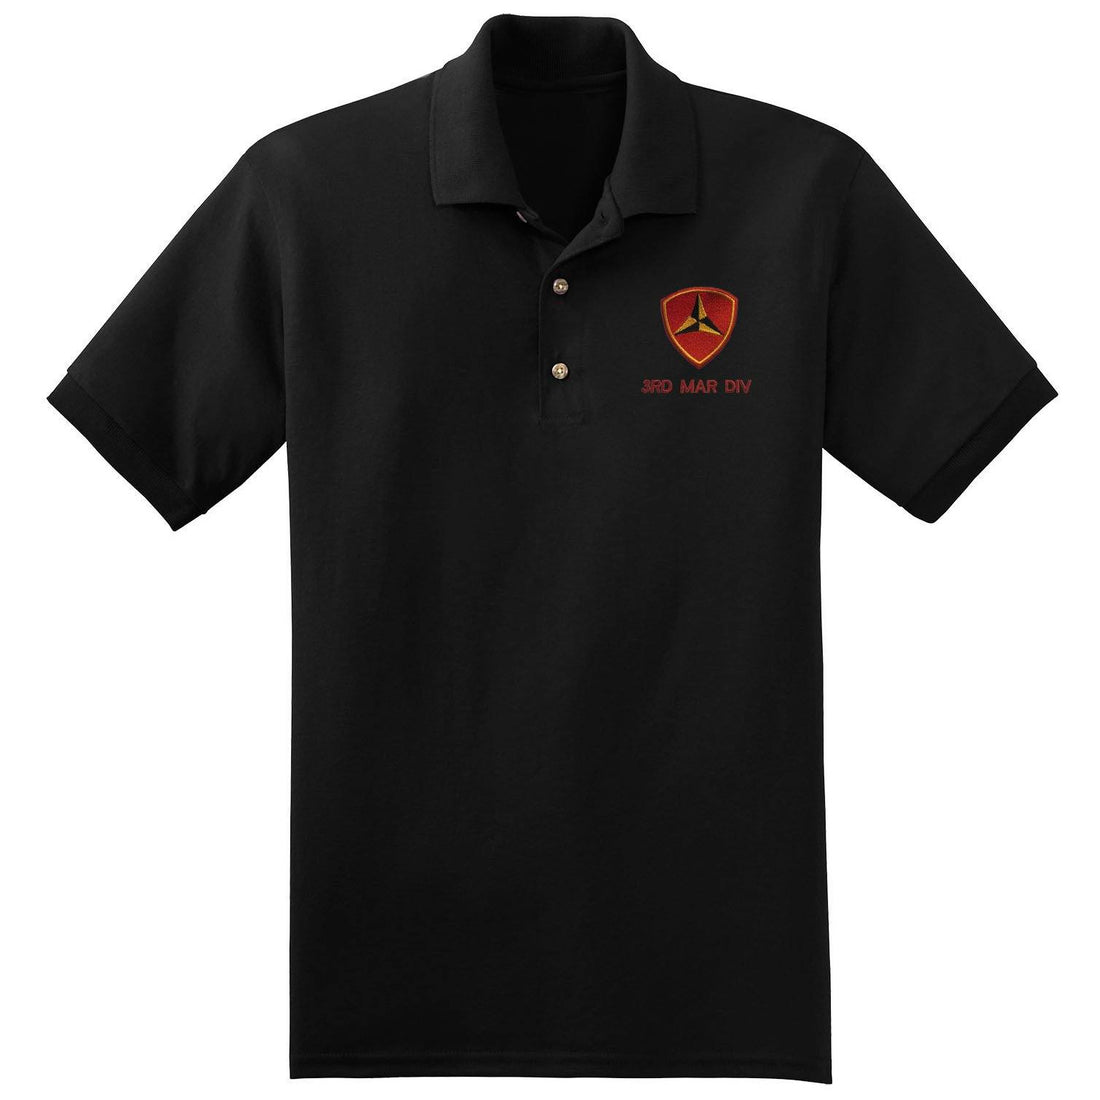 3rd Mar Div Embroidered Polo - Marine Corps Direct